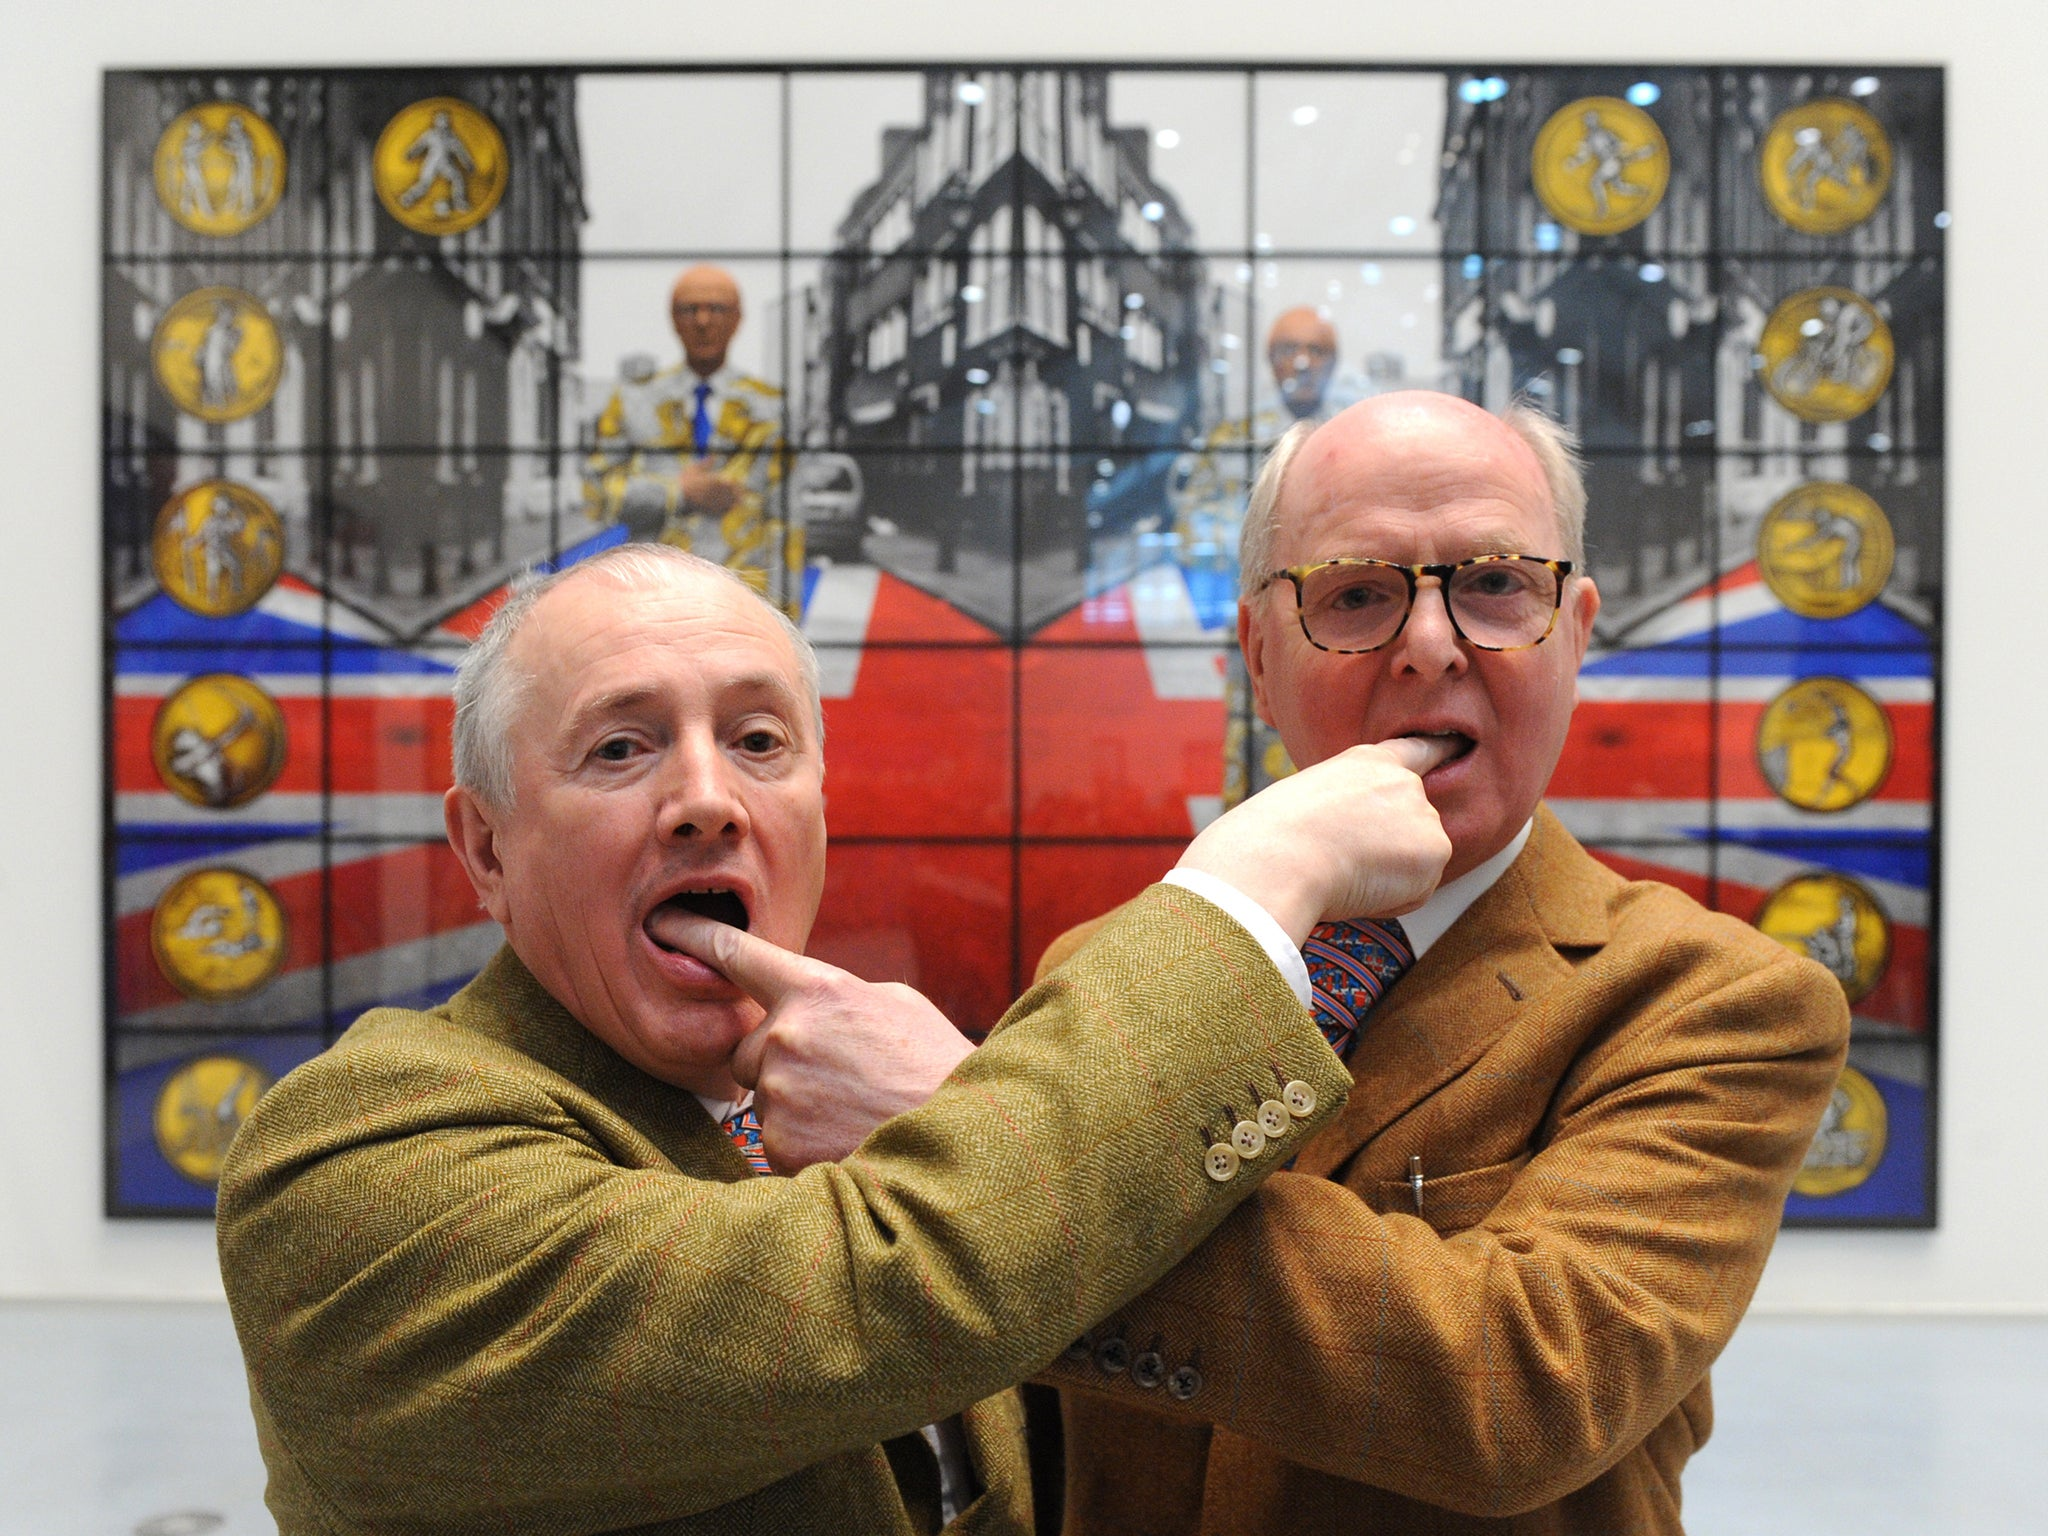 Gilbert And George: Gilbert & George: What Exactly Do We Remember Them For